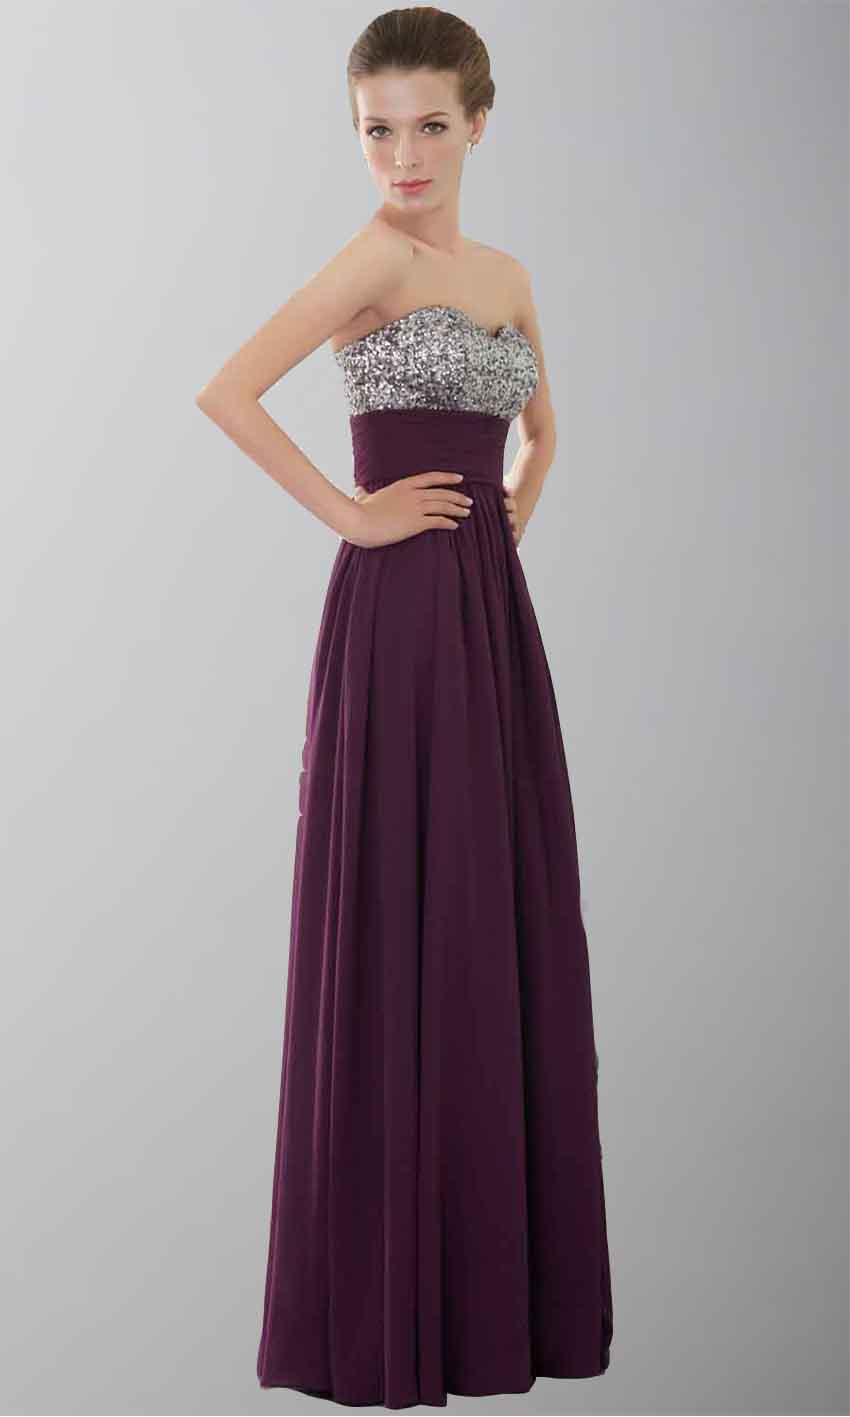 Empire Waist Band Strapless Long Prom Dresses KSP319 [KSP319] - £99.00 : Cheap Prom Dresses Uk, Bridesmaid Dresses, 2014 Prom & Evening Dresses, Look for cheap elegant prom dresses 2014, cocktail gowns, or dresses for special occasions? kissprom.co.uk offers various bridesmaid dresses, evening dress, free shipping to UK etc.